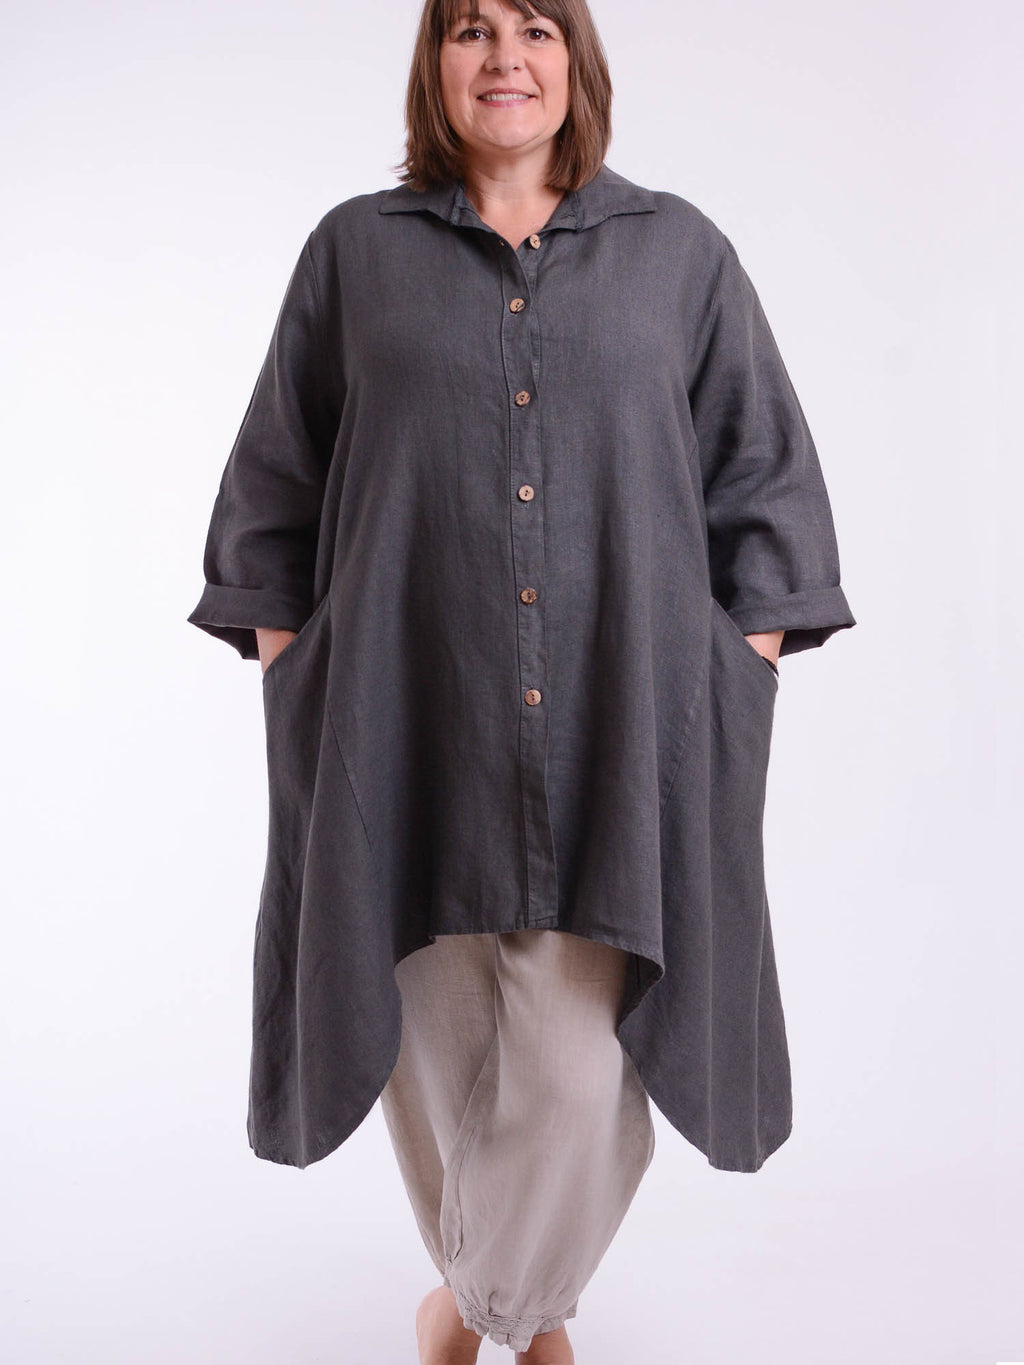 Plus Size Lagenlook Heavy Linen Shirt Dress 9445 - Pure Plus Clothing